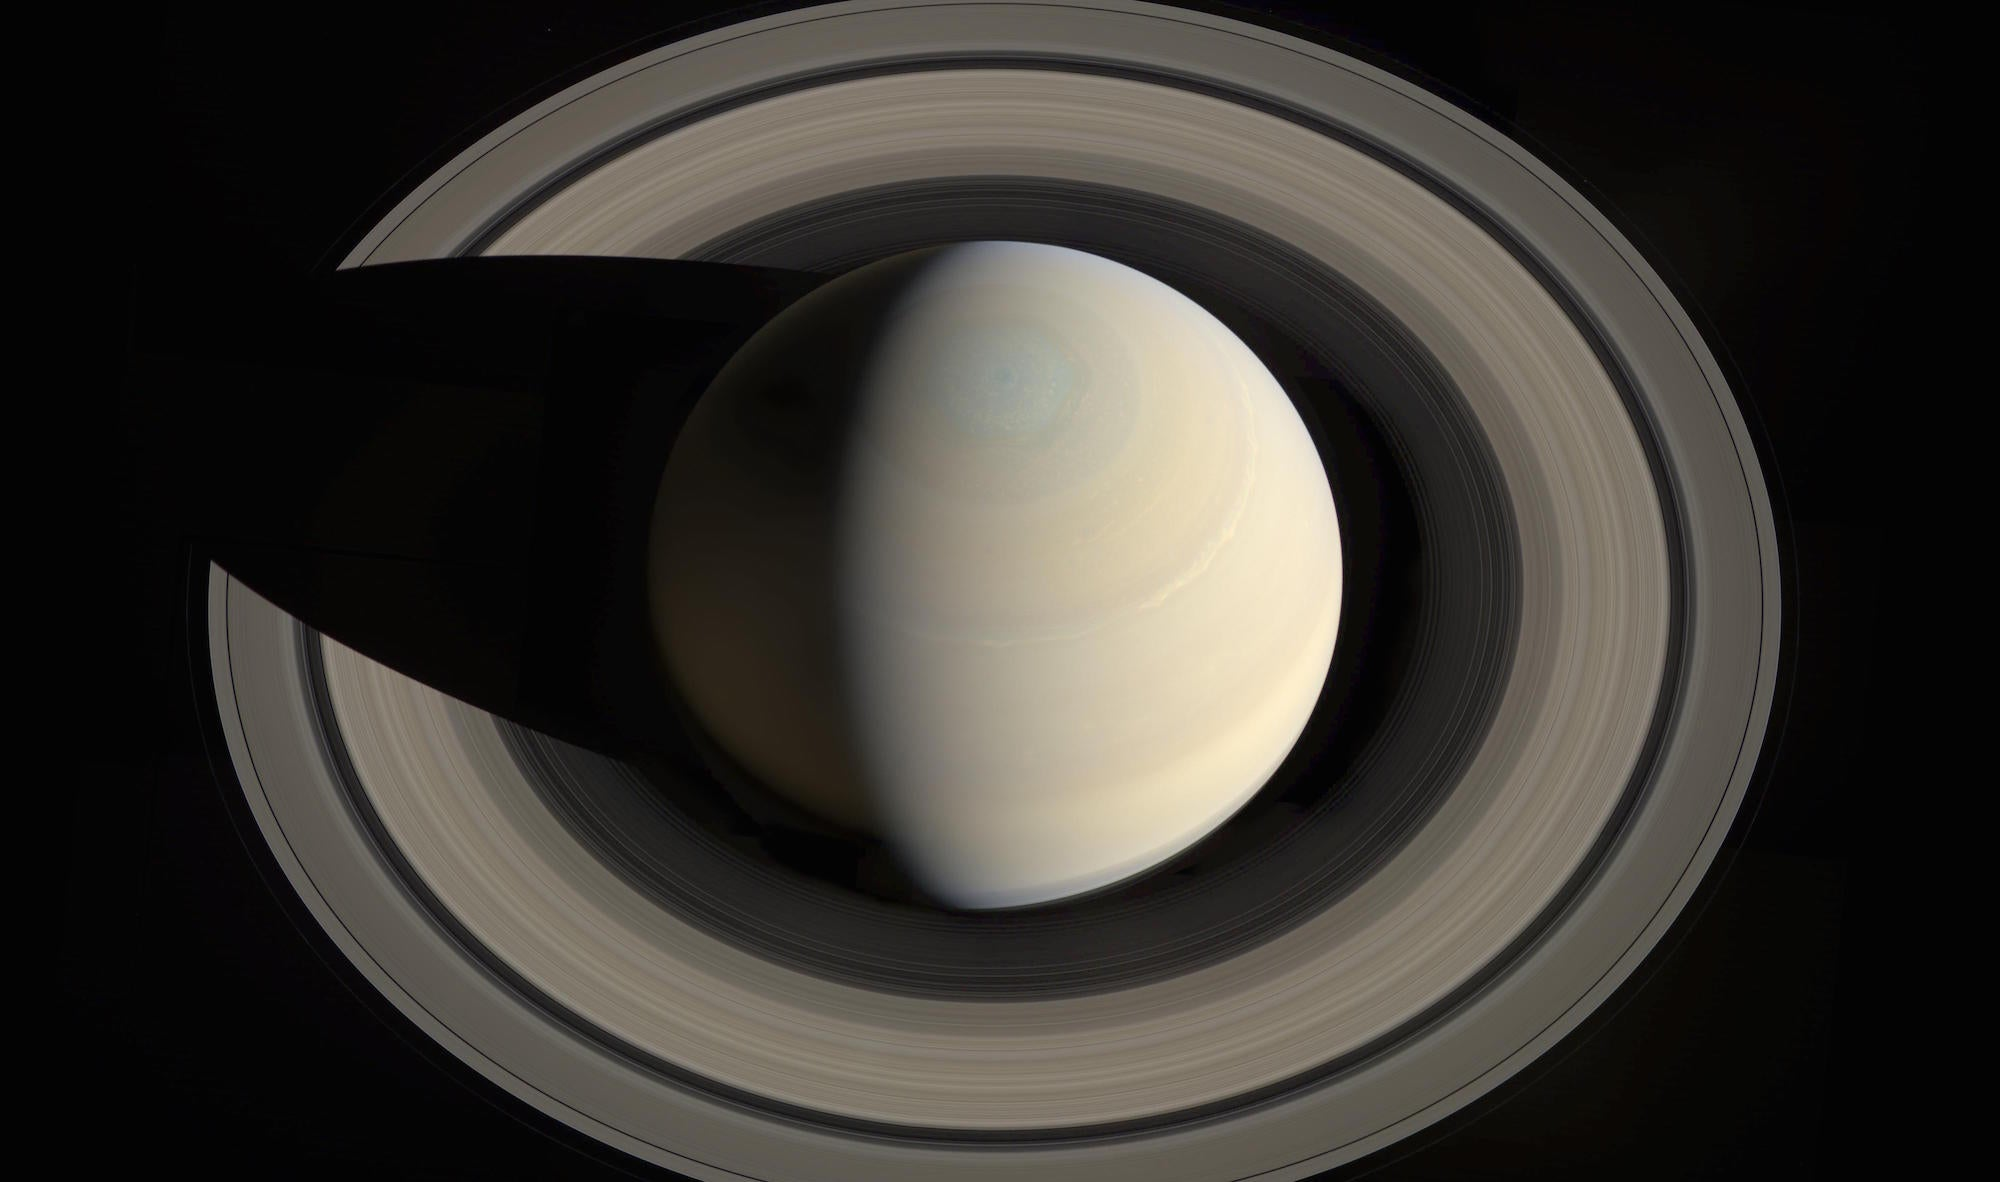 An Optical Illusion Has Been Tricking Everyone About the Size of Saturn's Rings for Centuries